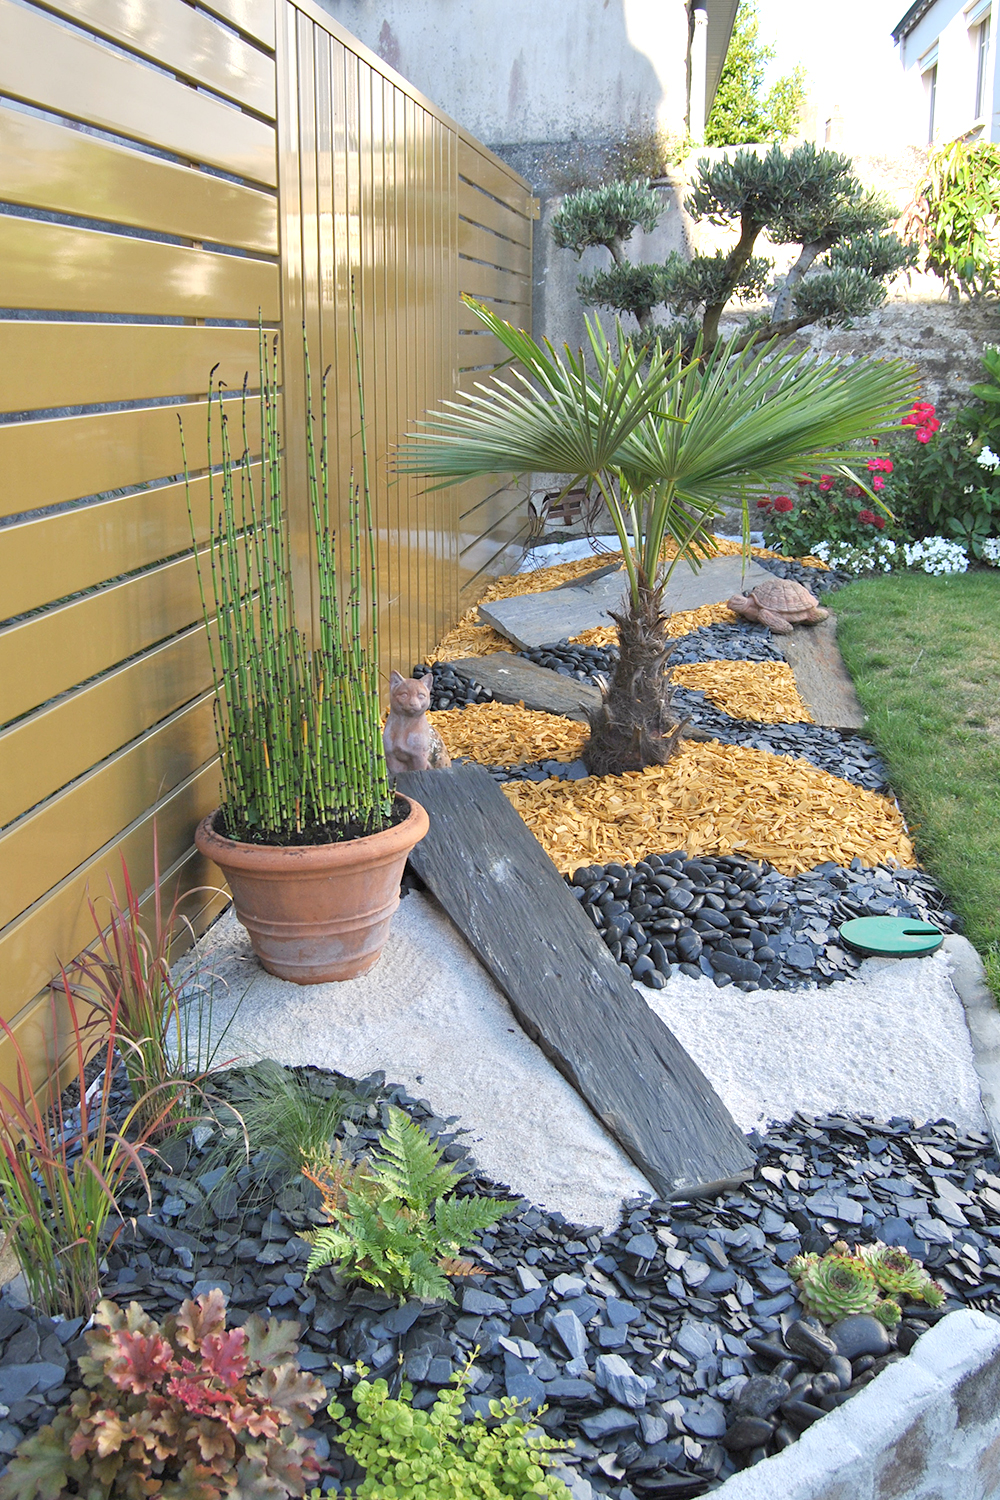 Am nagement ext rieur et d coration de terrasse for Plantes ombre exterieur nord